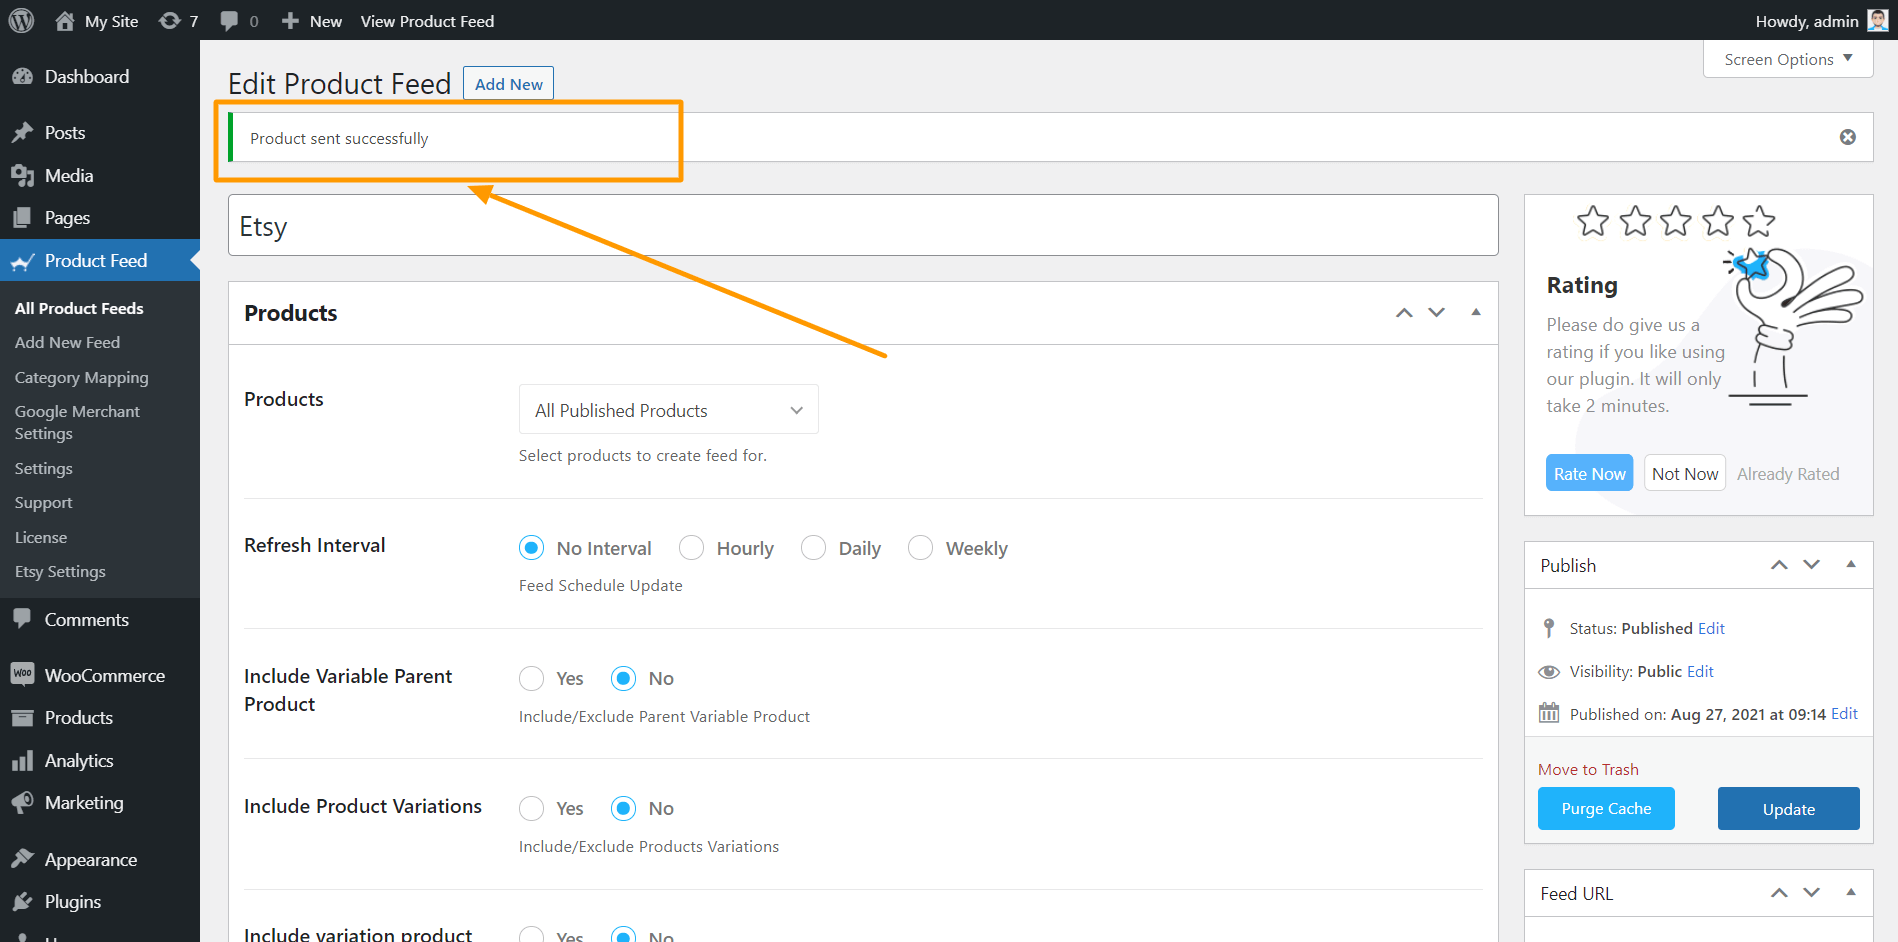 Product Feed Manager - Data Sent To Etsy Successfully